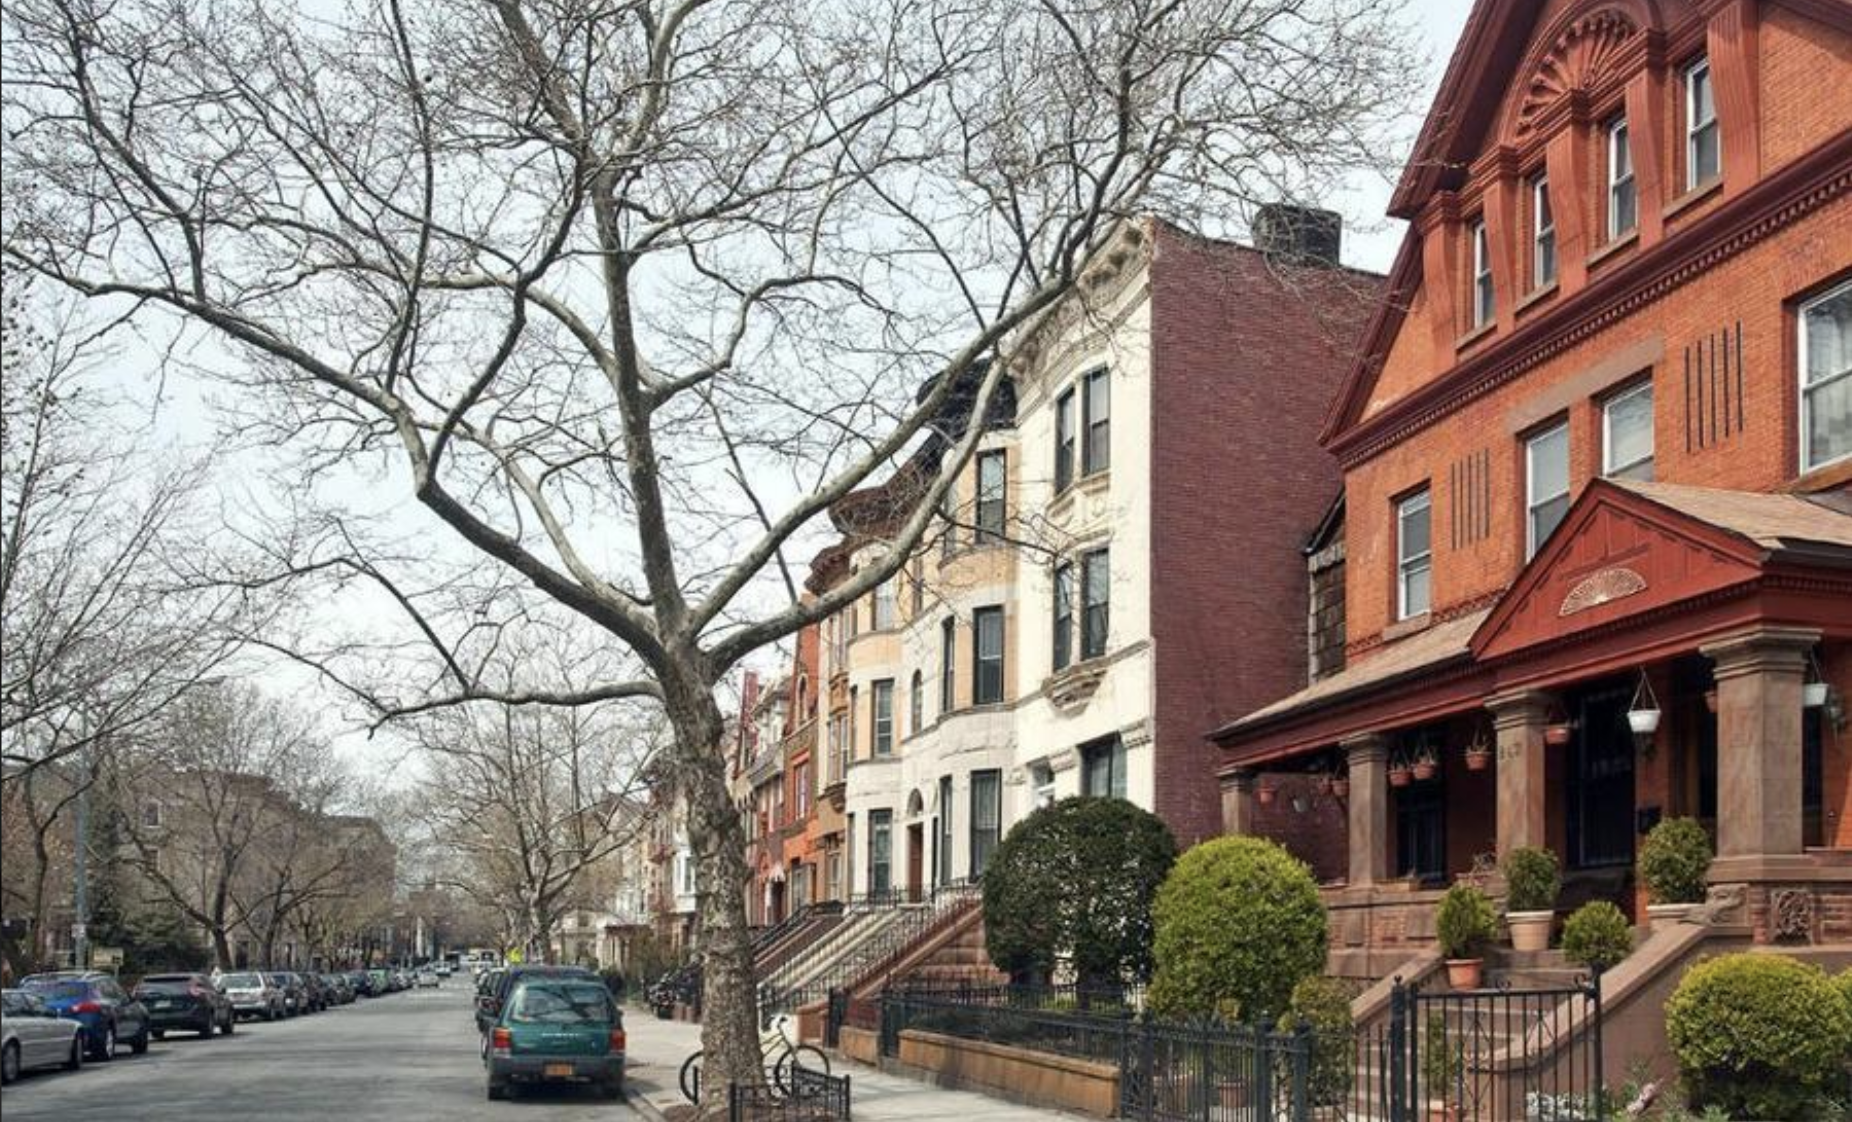 $955,000 6.0 BD | 3.0 BA | 4,000 SF  Crown Heights  845 Prospect Place  Sold